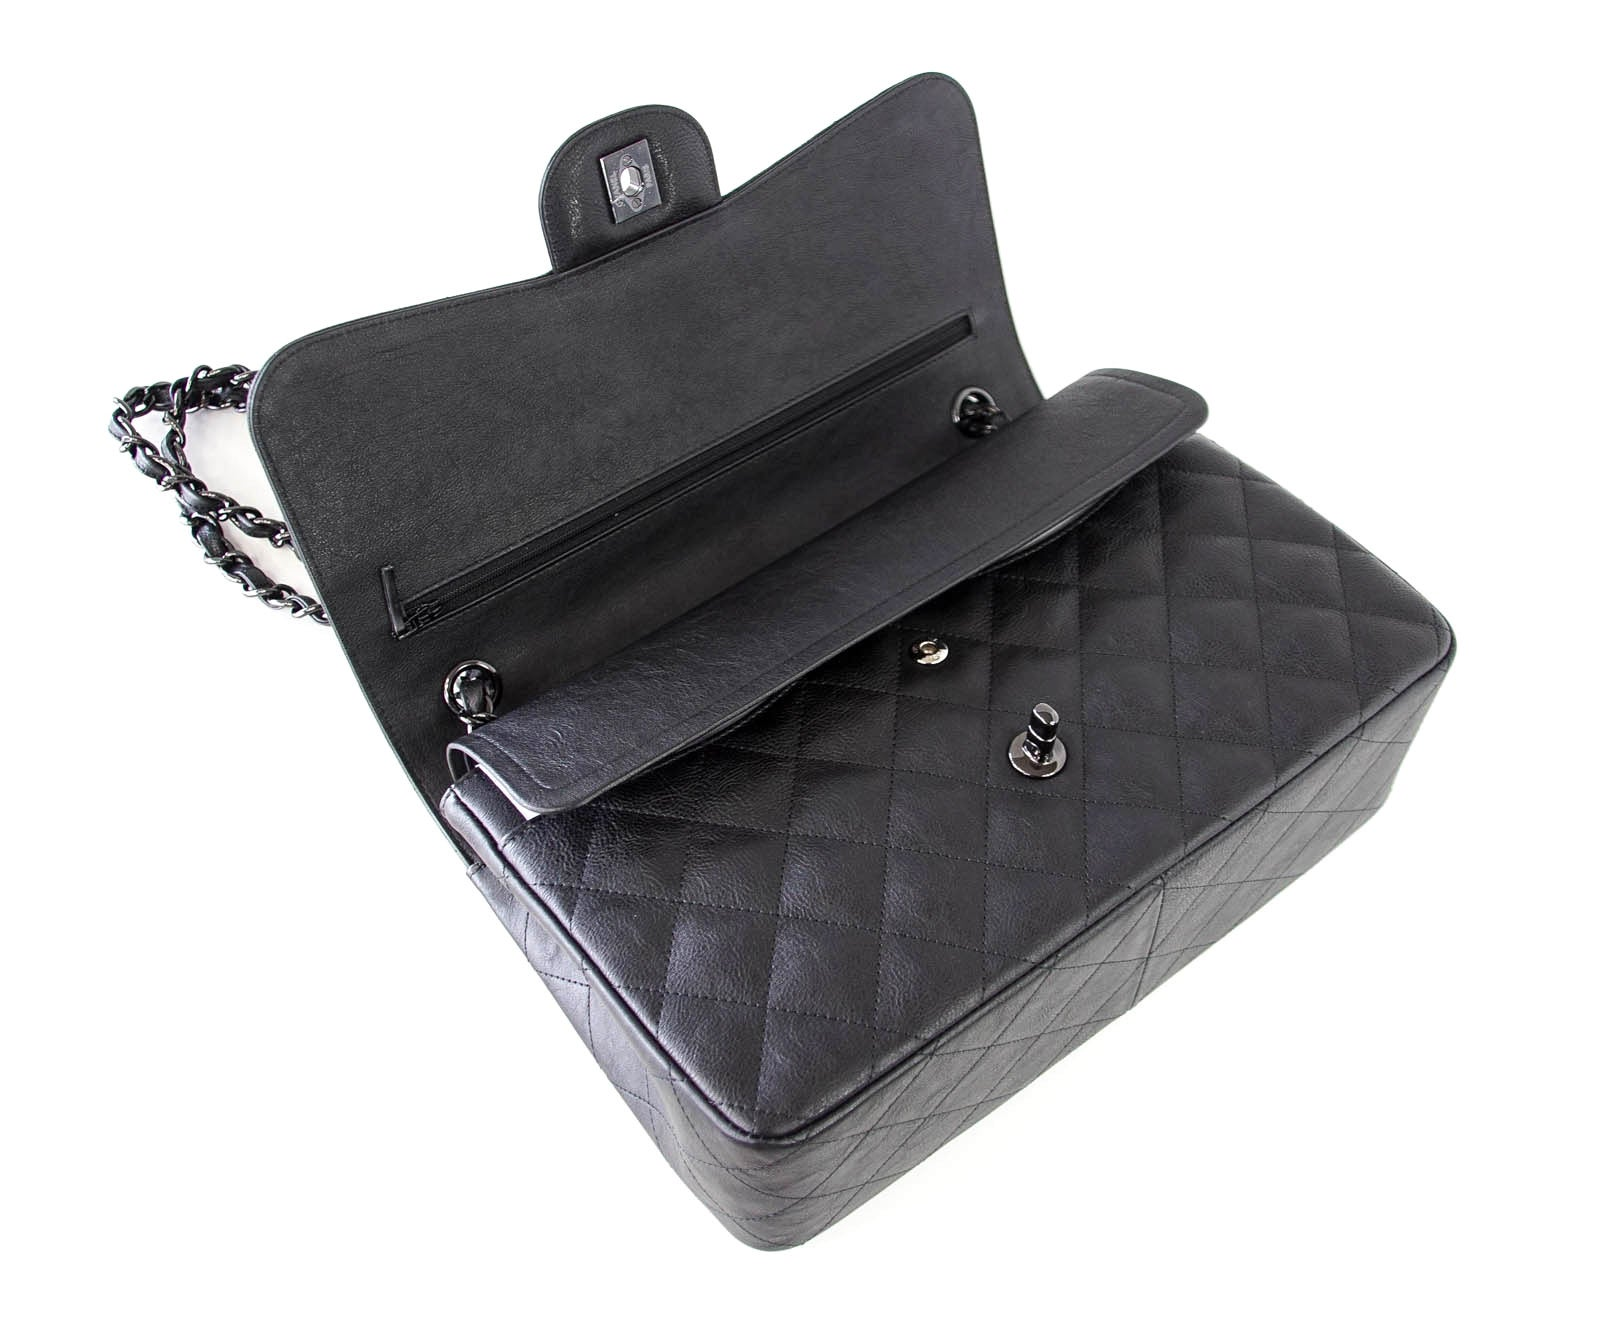 1c70a4d55460 CHANEL Bag Quilted So Black Jumbo Classic Double Flap Calfskin Limited  Edition at 1stdibs